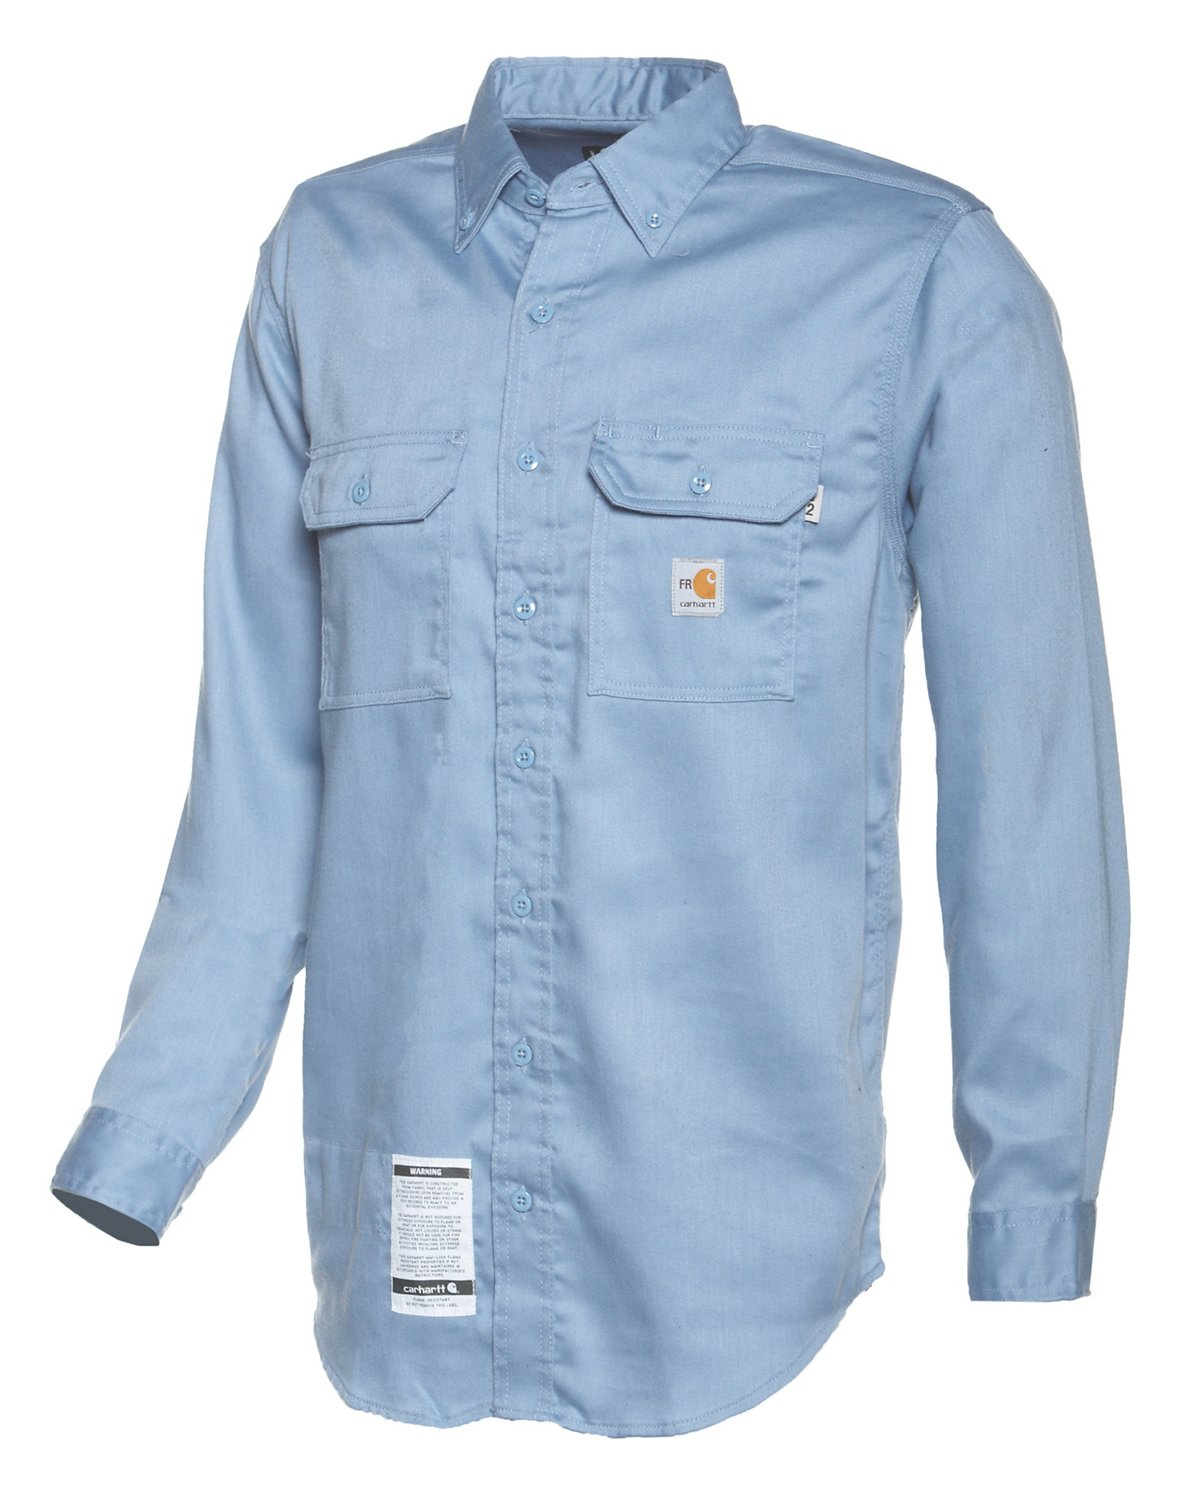 01ef83a36ad4 Carhartt Men s Flame-Resistant Work-Dry Lightweight Twill Shirt ...